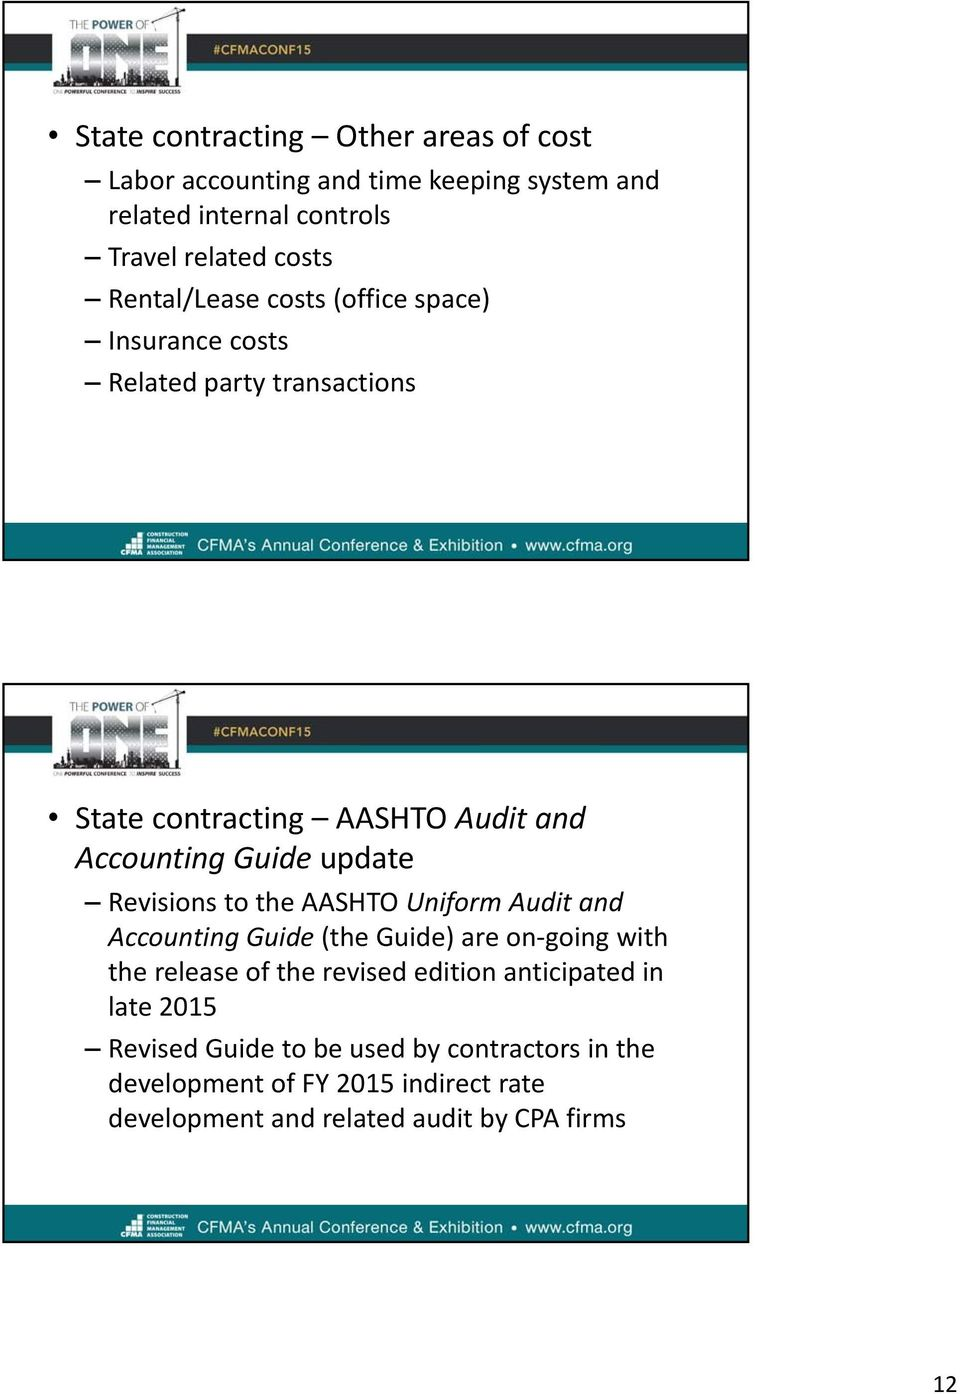 Revisions to the AASHTO Uniform Audit and Accounting Guide (the Guide) are on going with the release of the revised edition anticipated